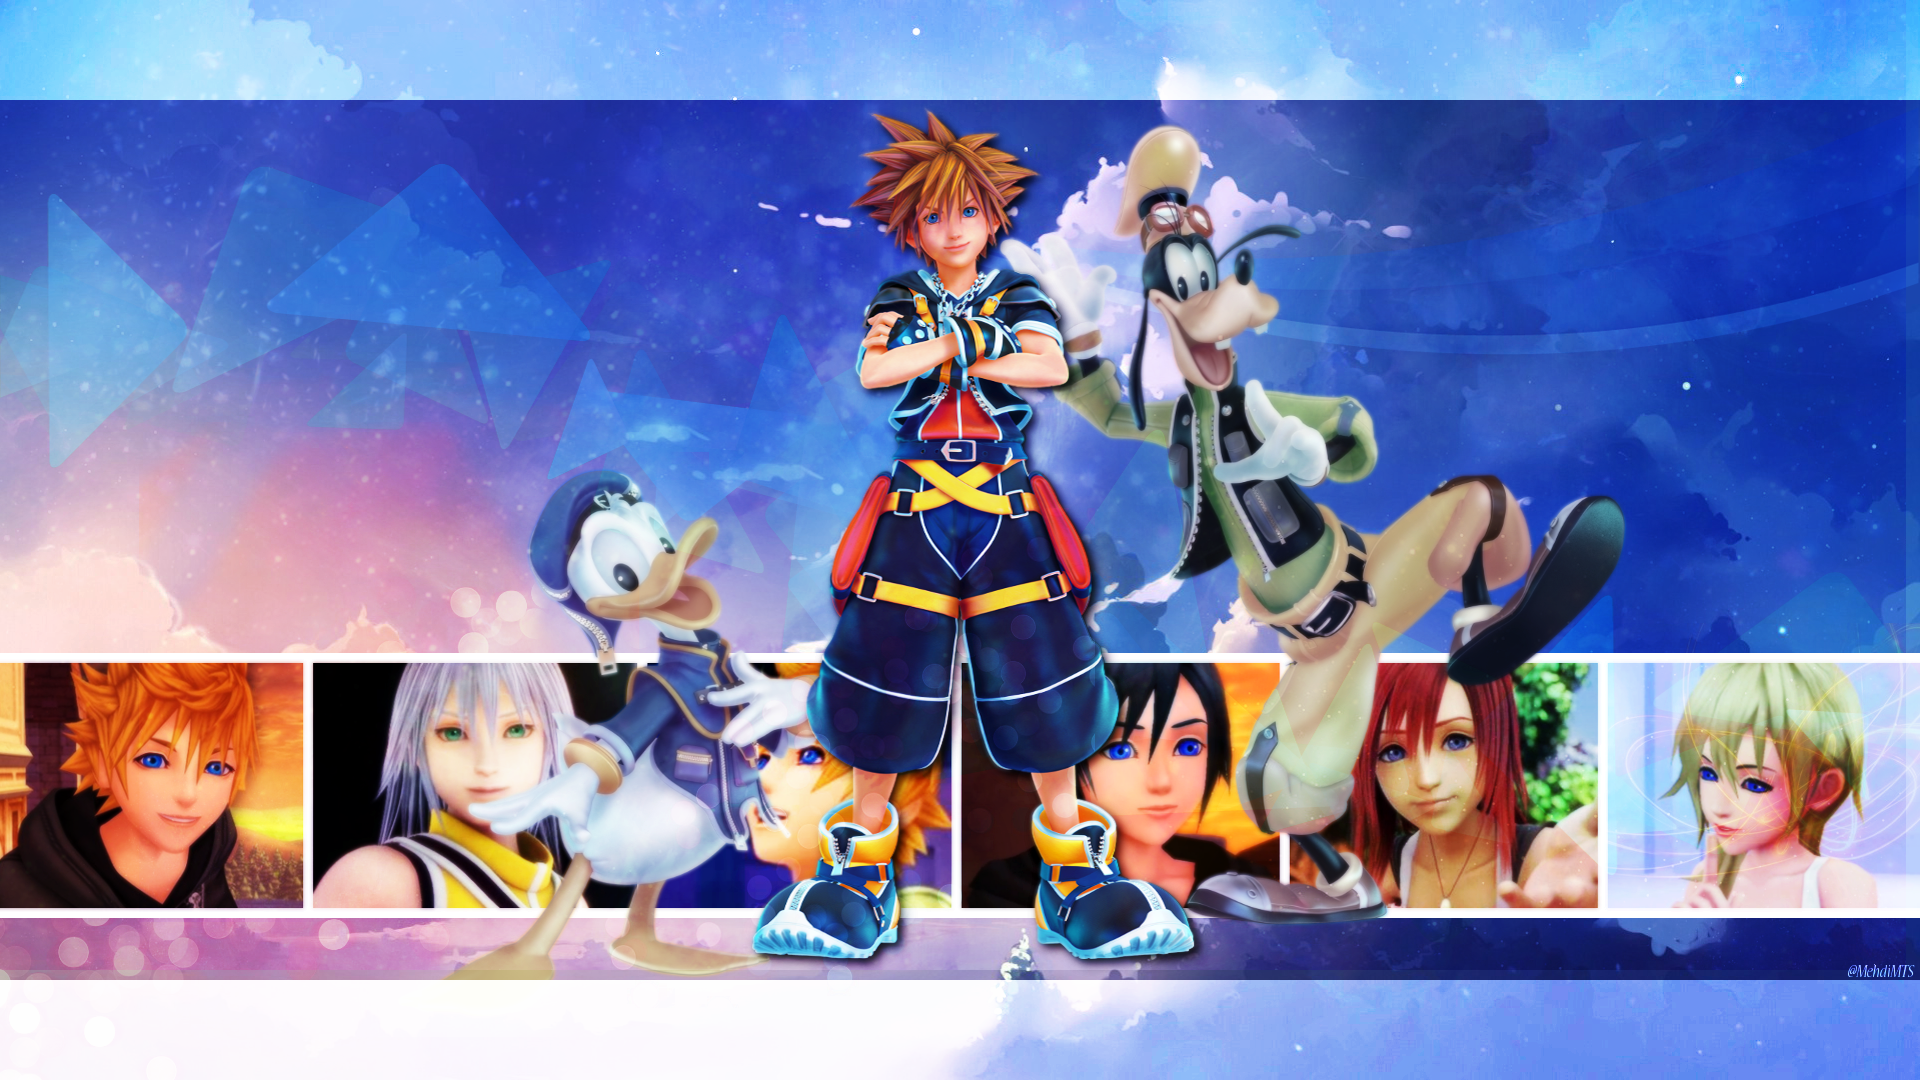 Kingdom Hearts 3 Hd Wallpaper Background Image 1920x1080 Id